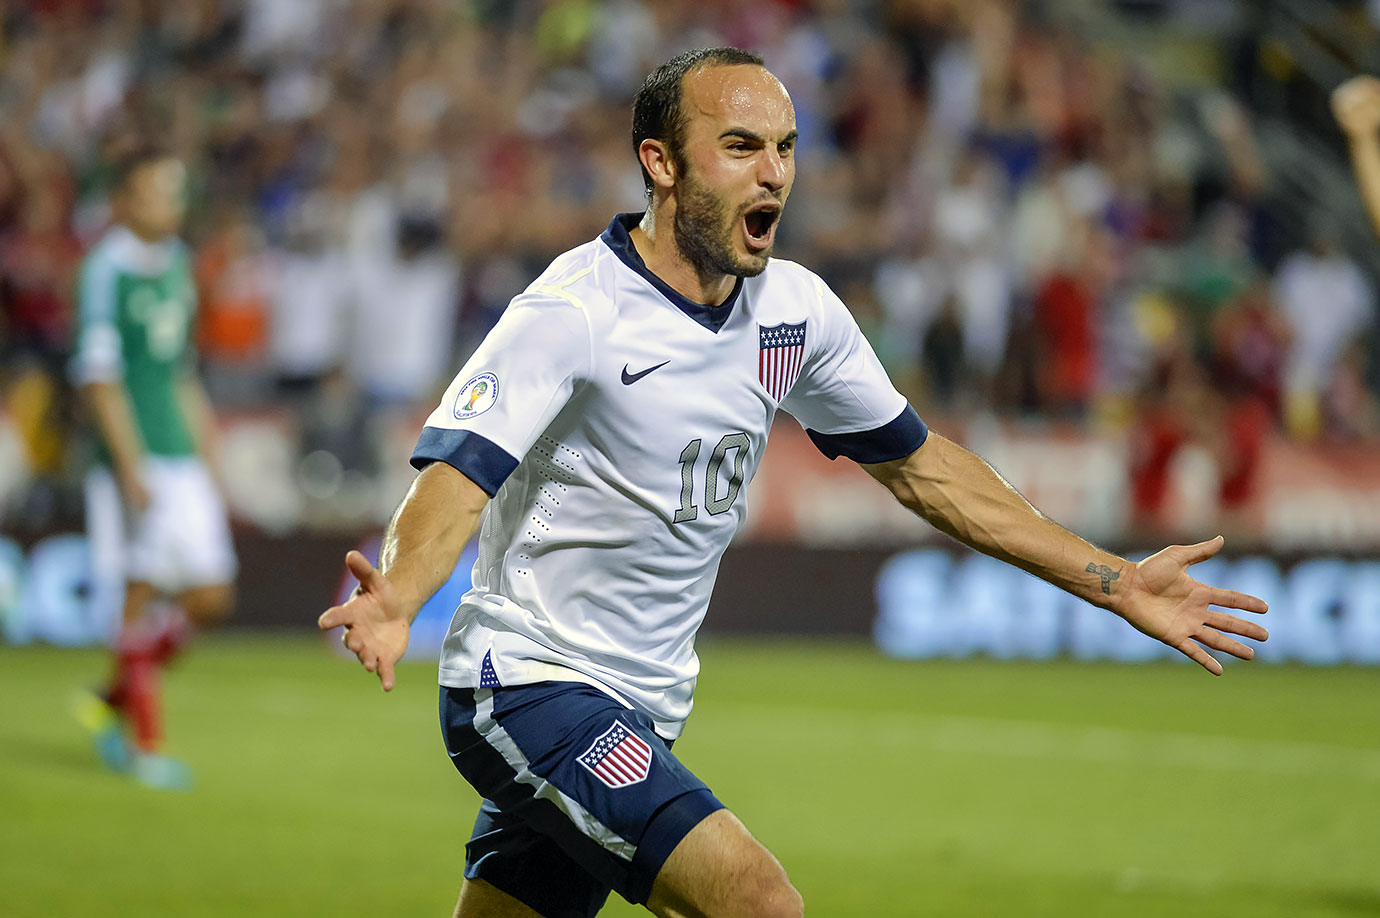 Landon Donovan celebrates after scoring a goal against Mexico in the Final Round of the CONCACAF World Cup Qualifying match for the FIFA 2014 Brazil World Cup at the Columbus Crew Stadium in Columbus, Ohio.